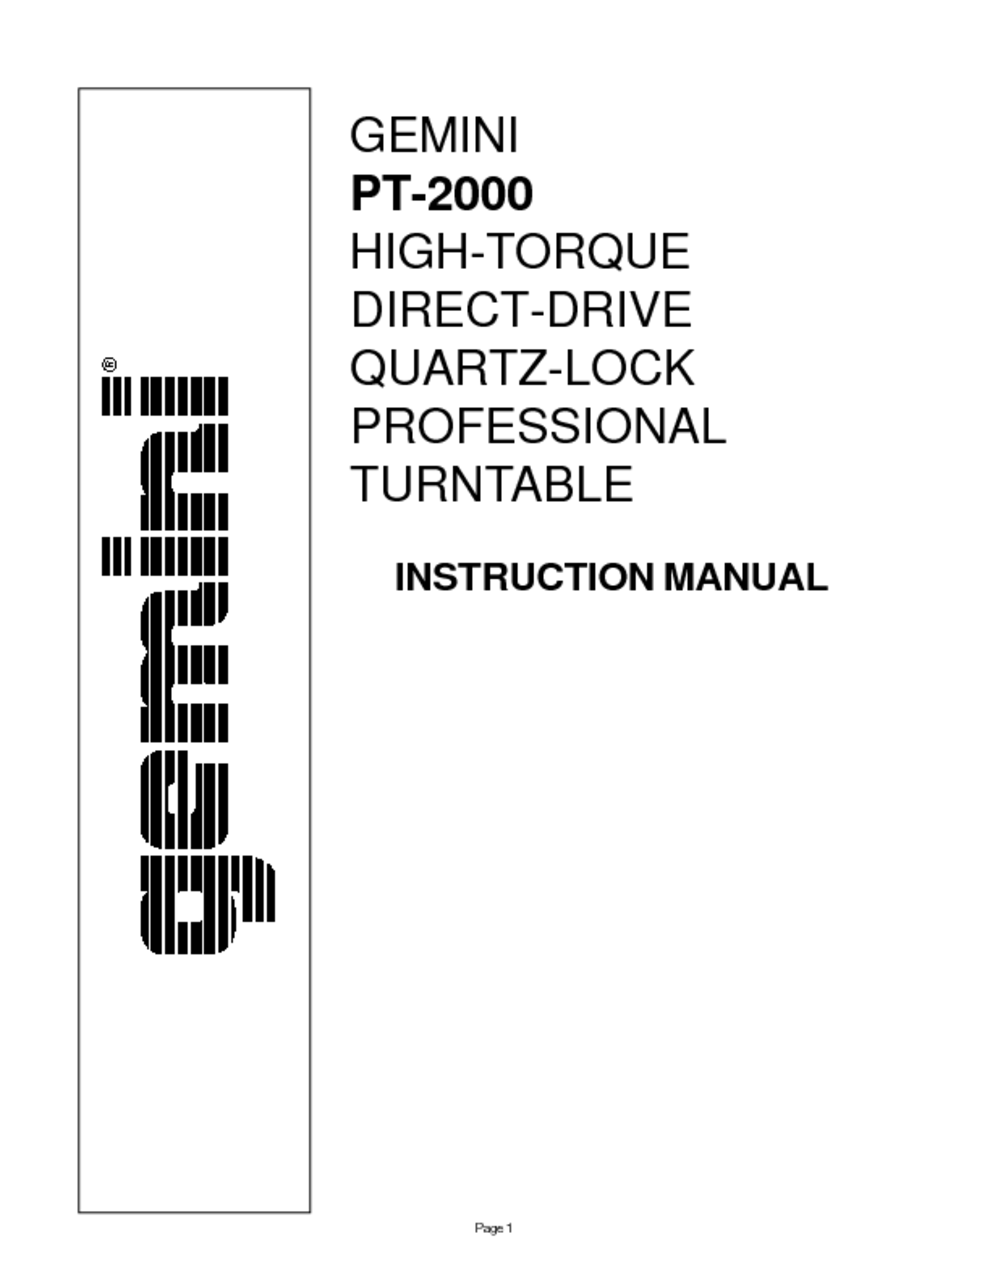 Innovative Technology Turntable Manuel Instruction